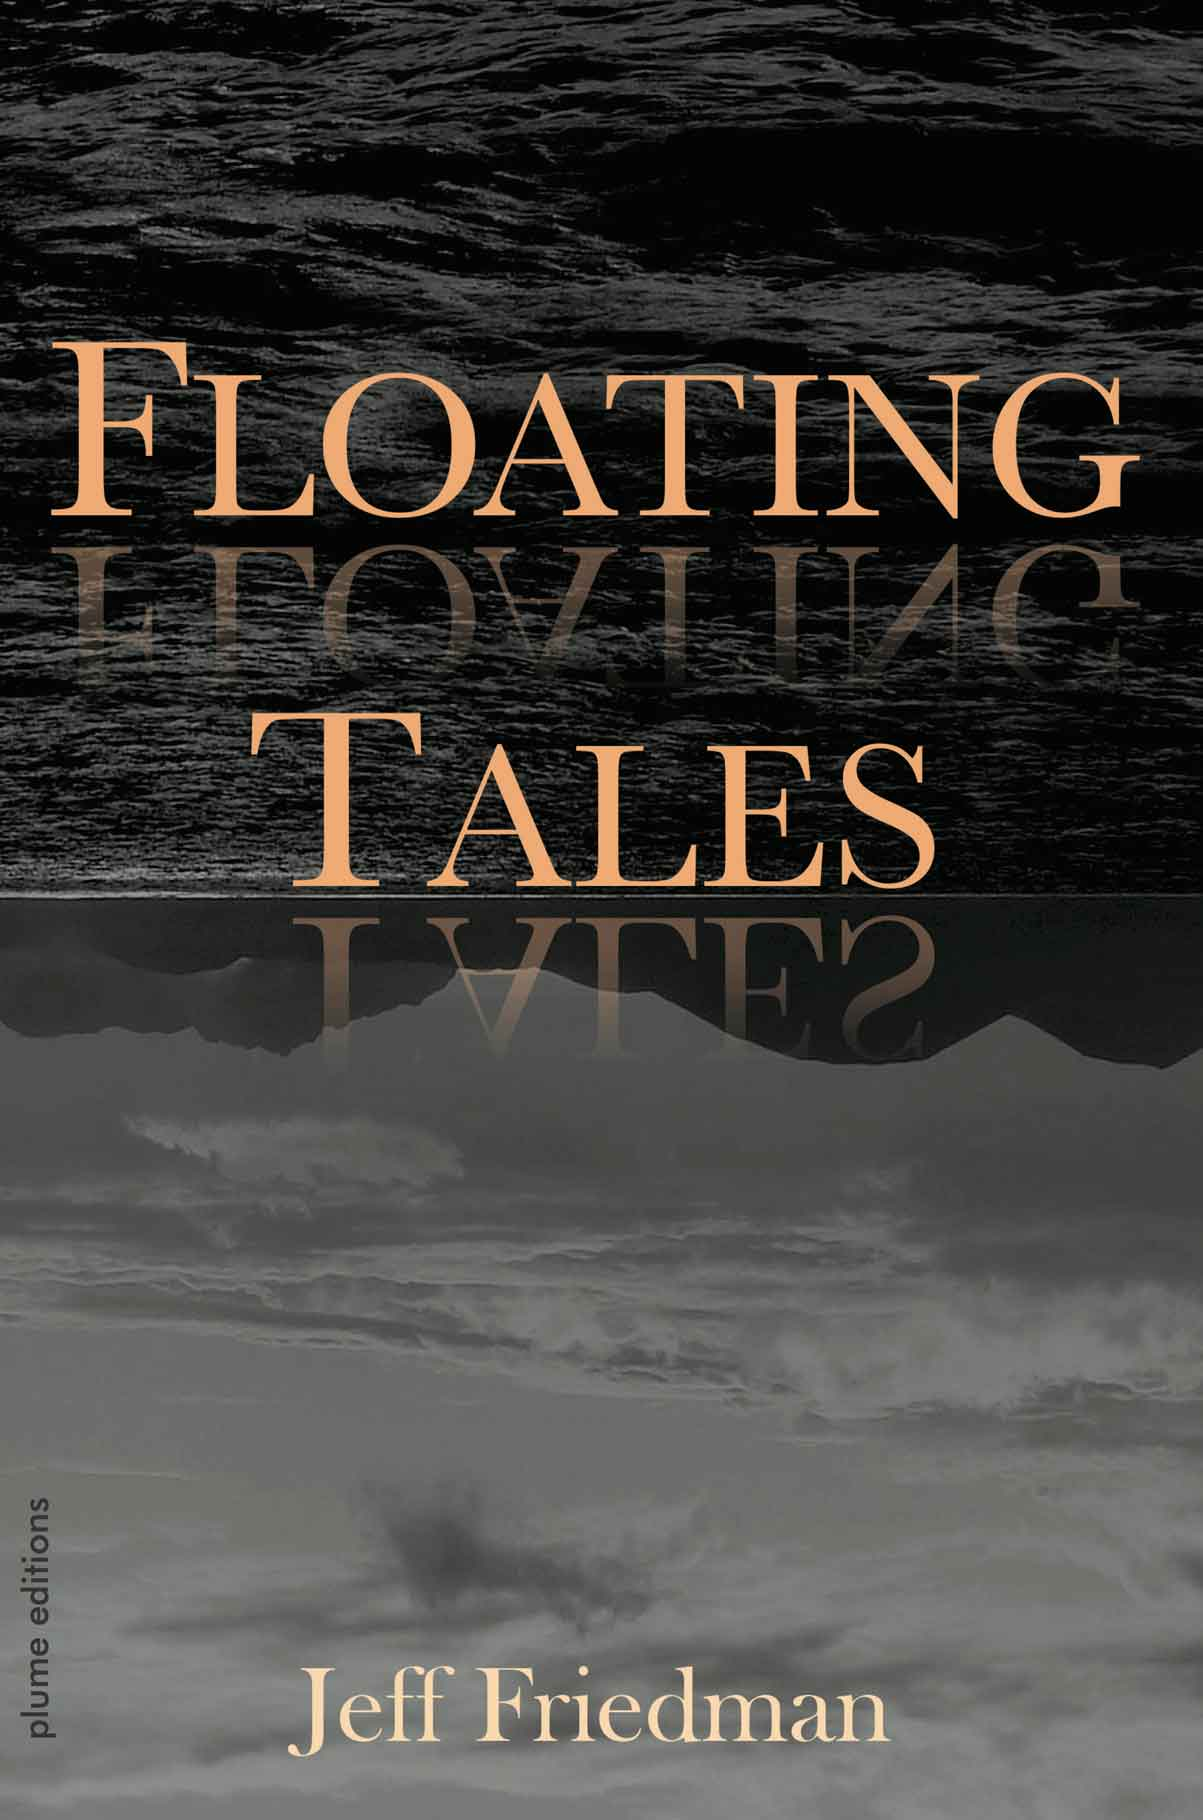 Floating Tales - Jeff Friedman